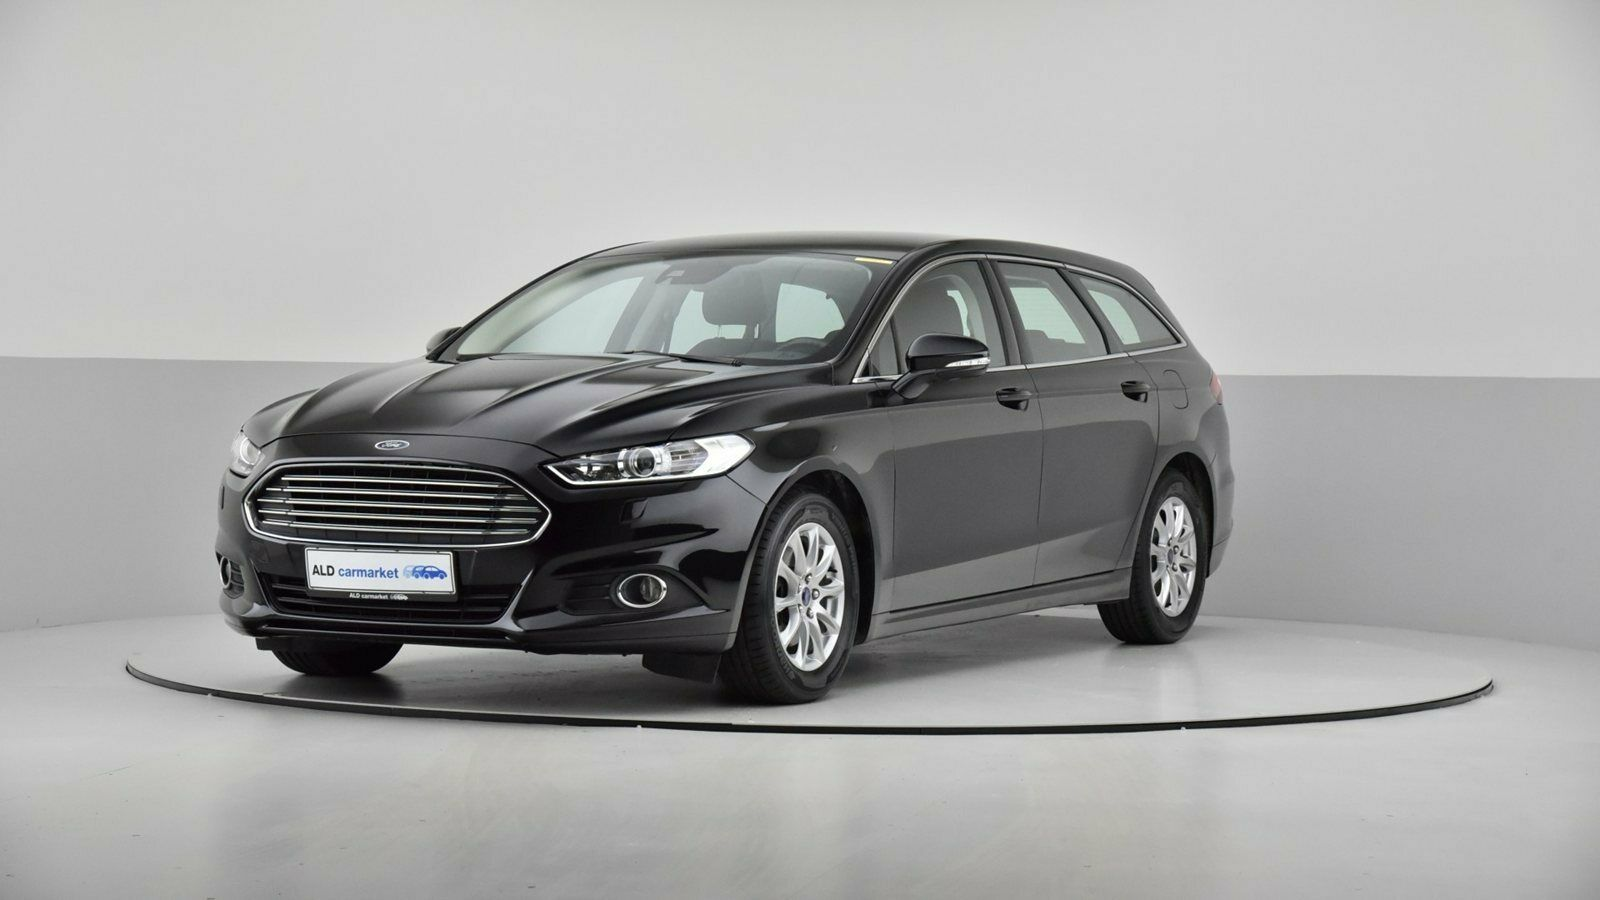 Ford Mondeo 2,0 TDCi 150 Trend stc. ECO 5d - 187.000 kr.